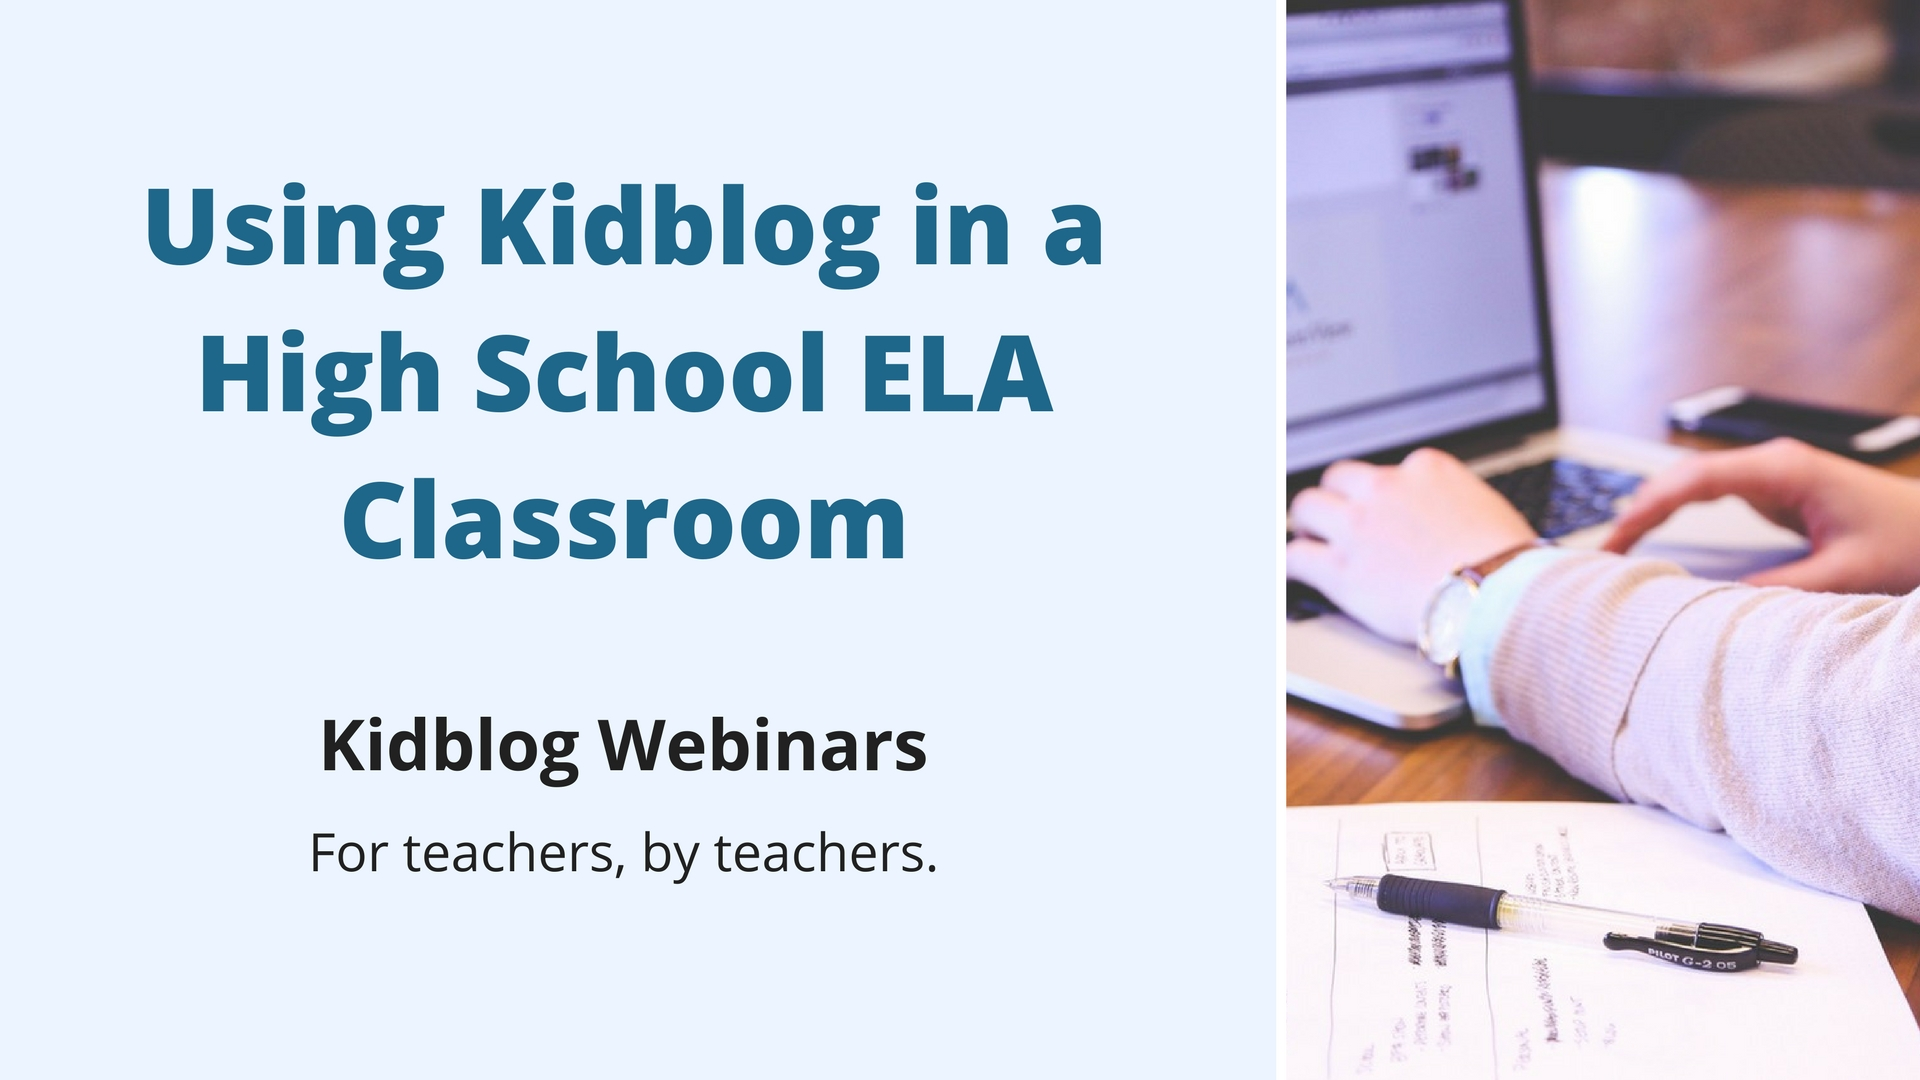 Webinar: Using Kidblog in a High School ELA Classroom